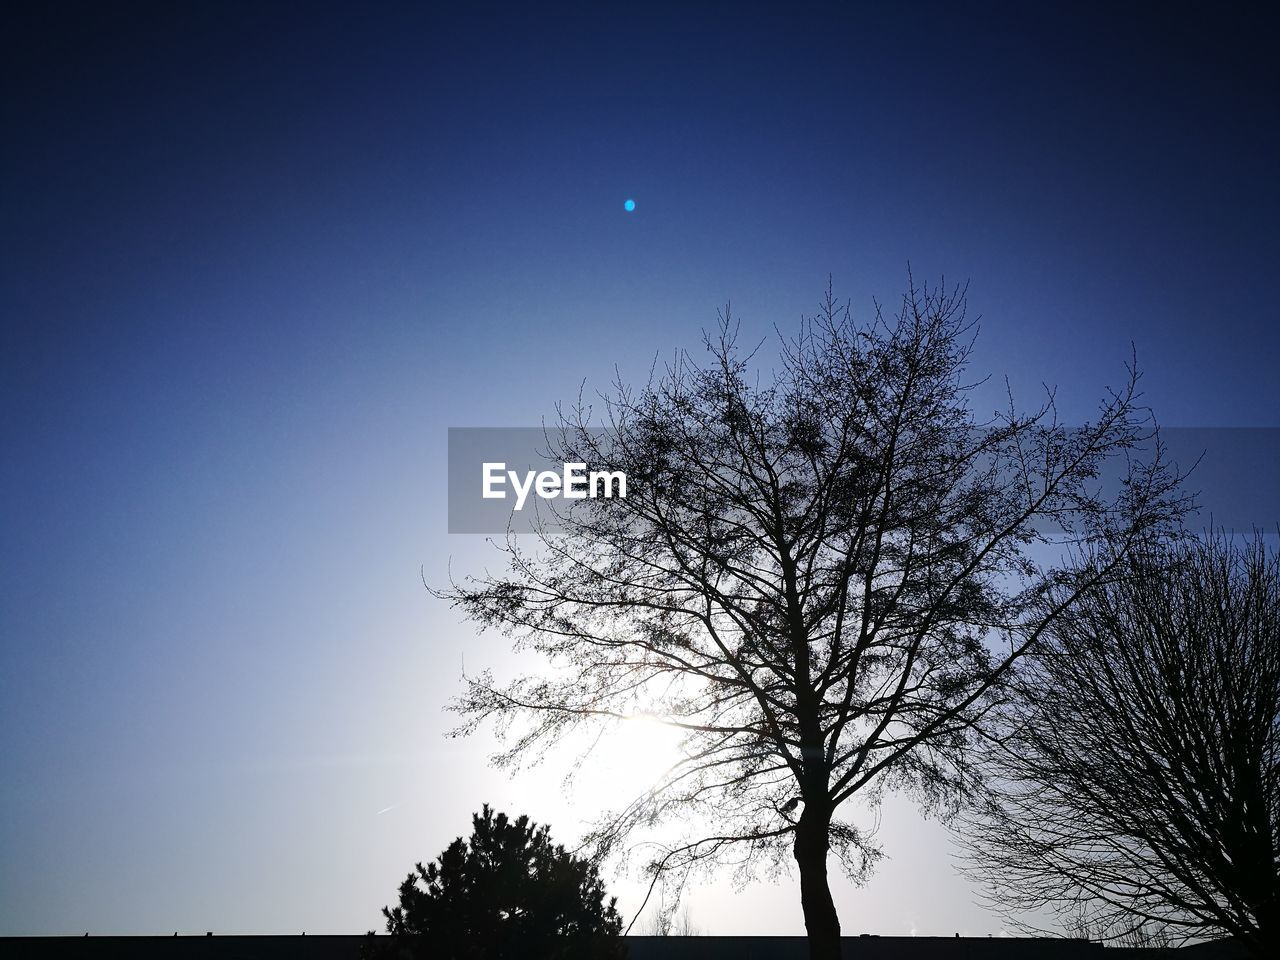 moon, tree, tranquility, bare tree, beauty in nature, nature, clear sky, low angle view, tranquil scene, sky, silhouette, scenics, outdoors, astronomy, blue, branch, half moon, no people, night, crescent